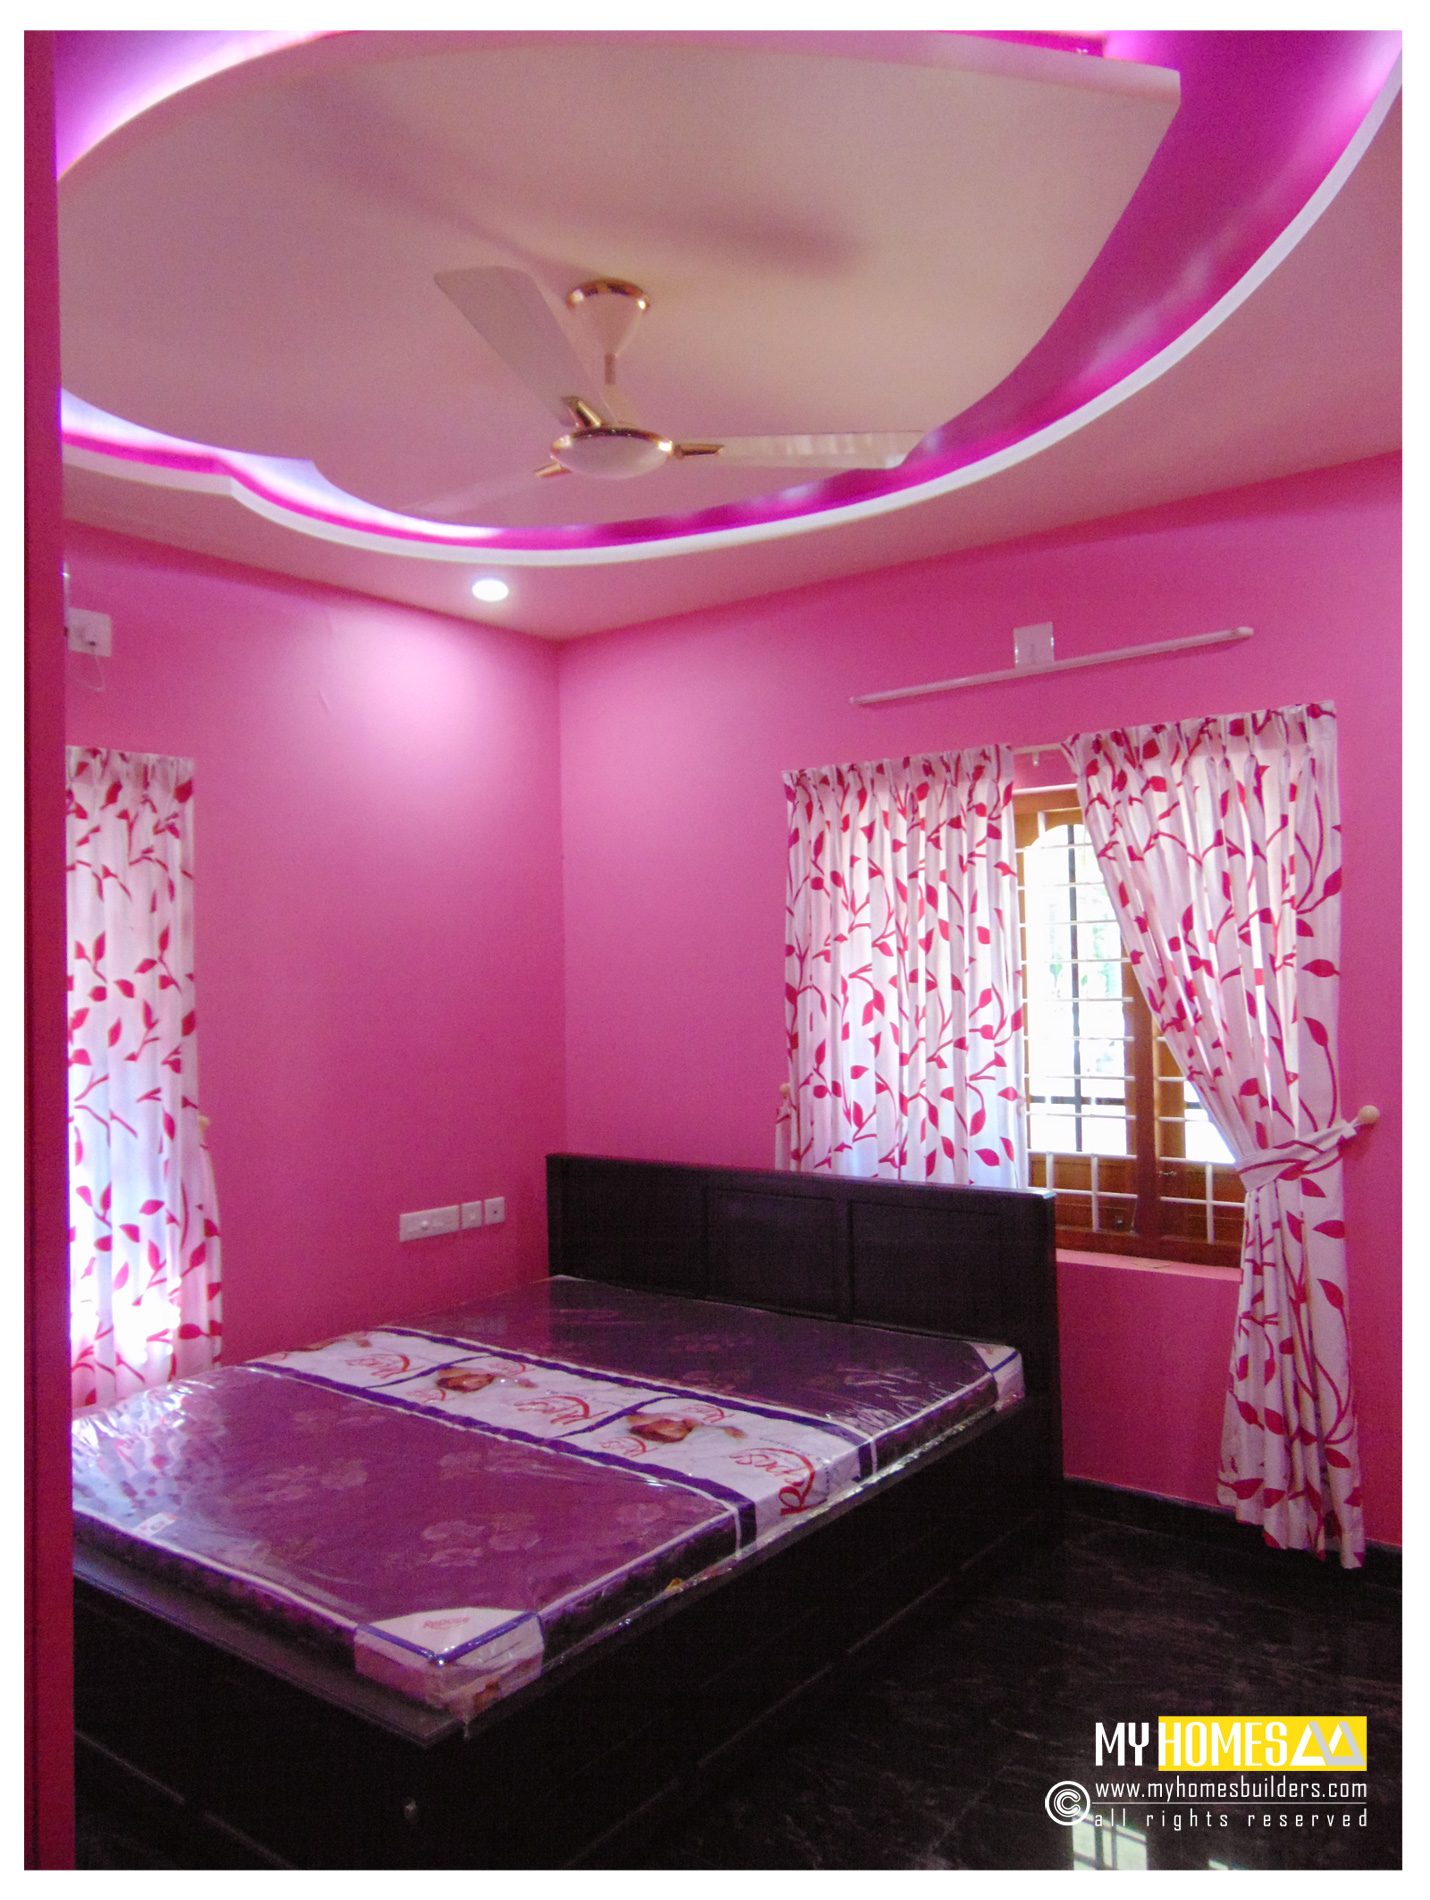 Simple style kerala bedroom designs ideas for home interior - Design of bedroom ...